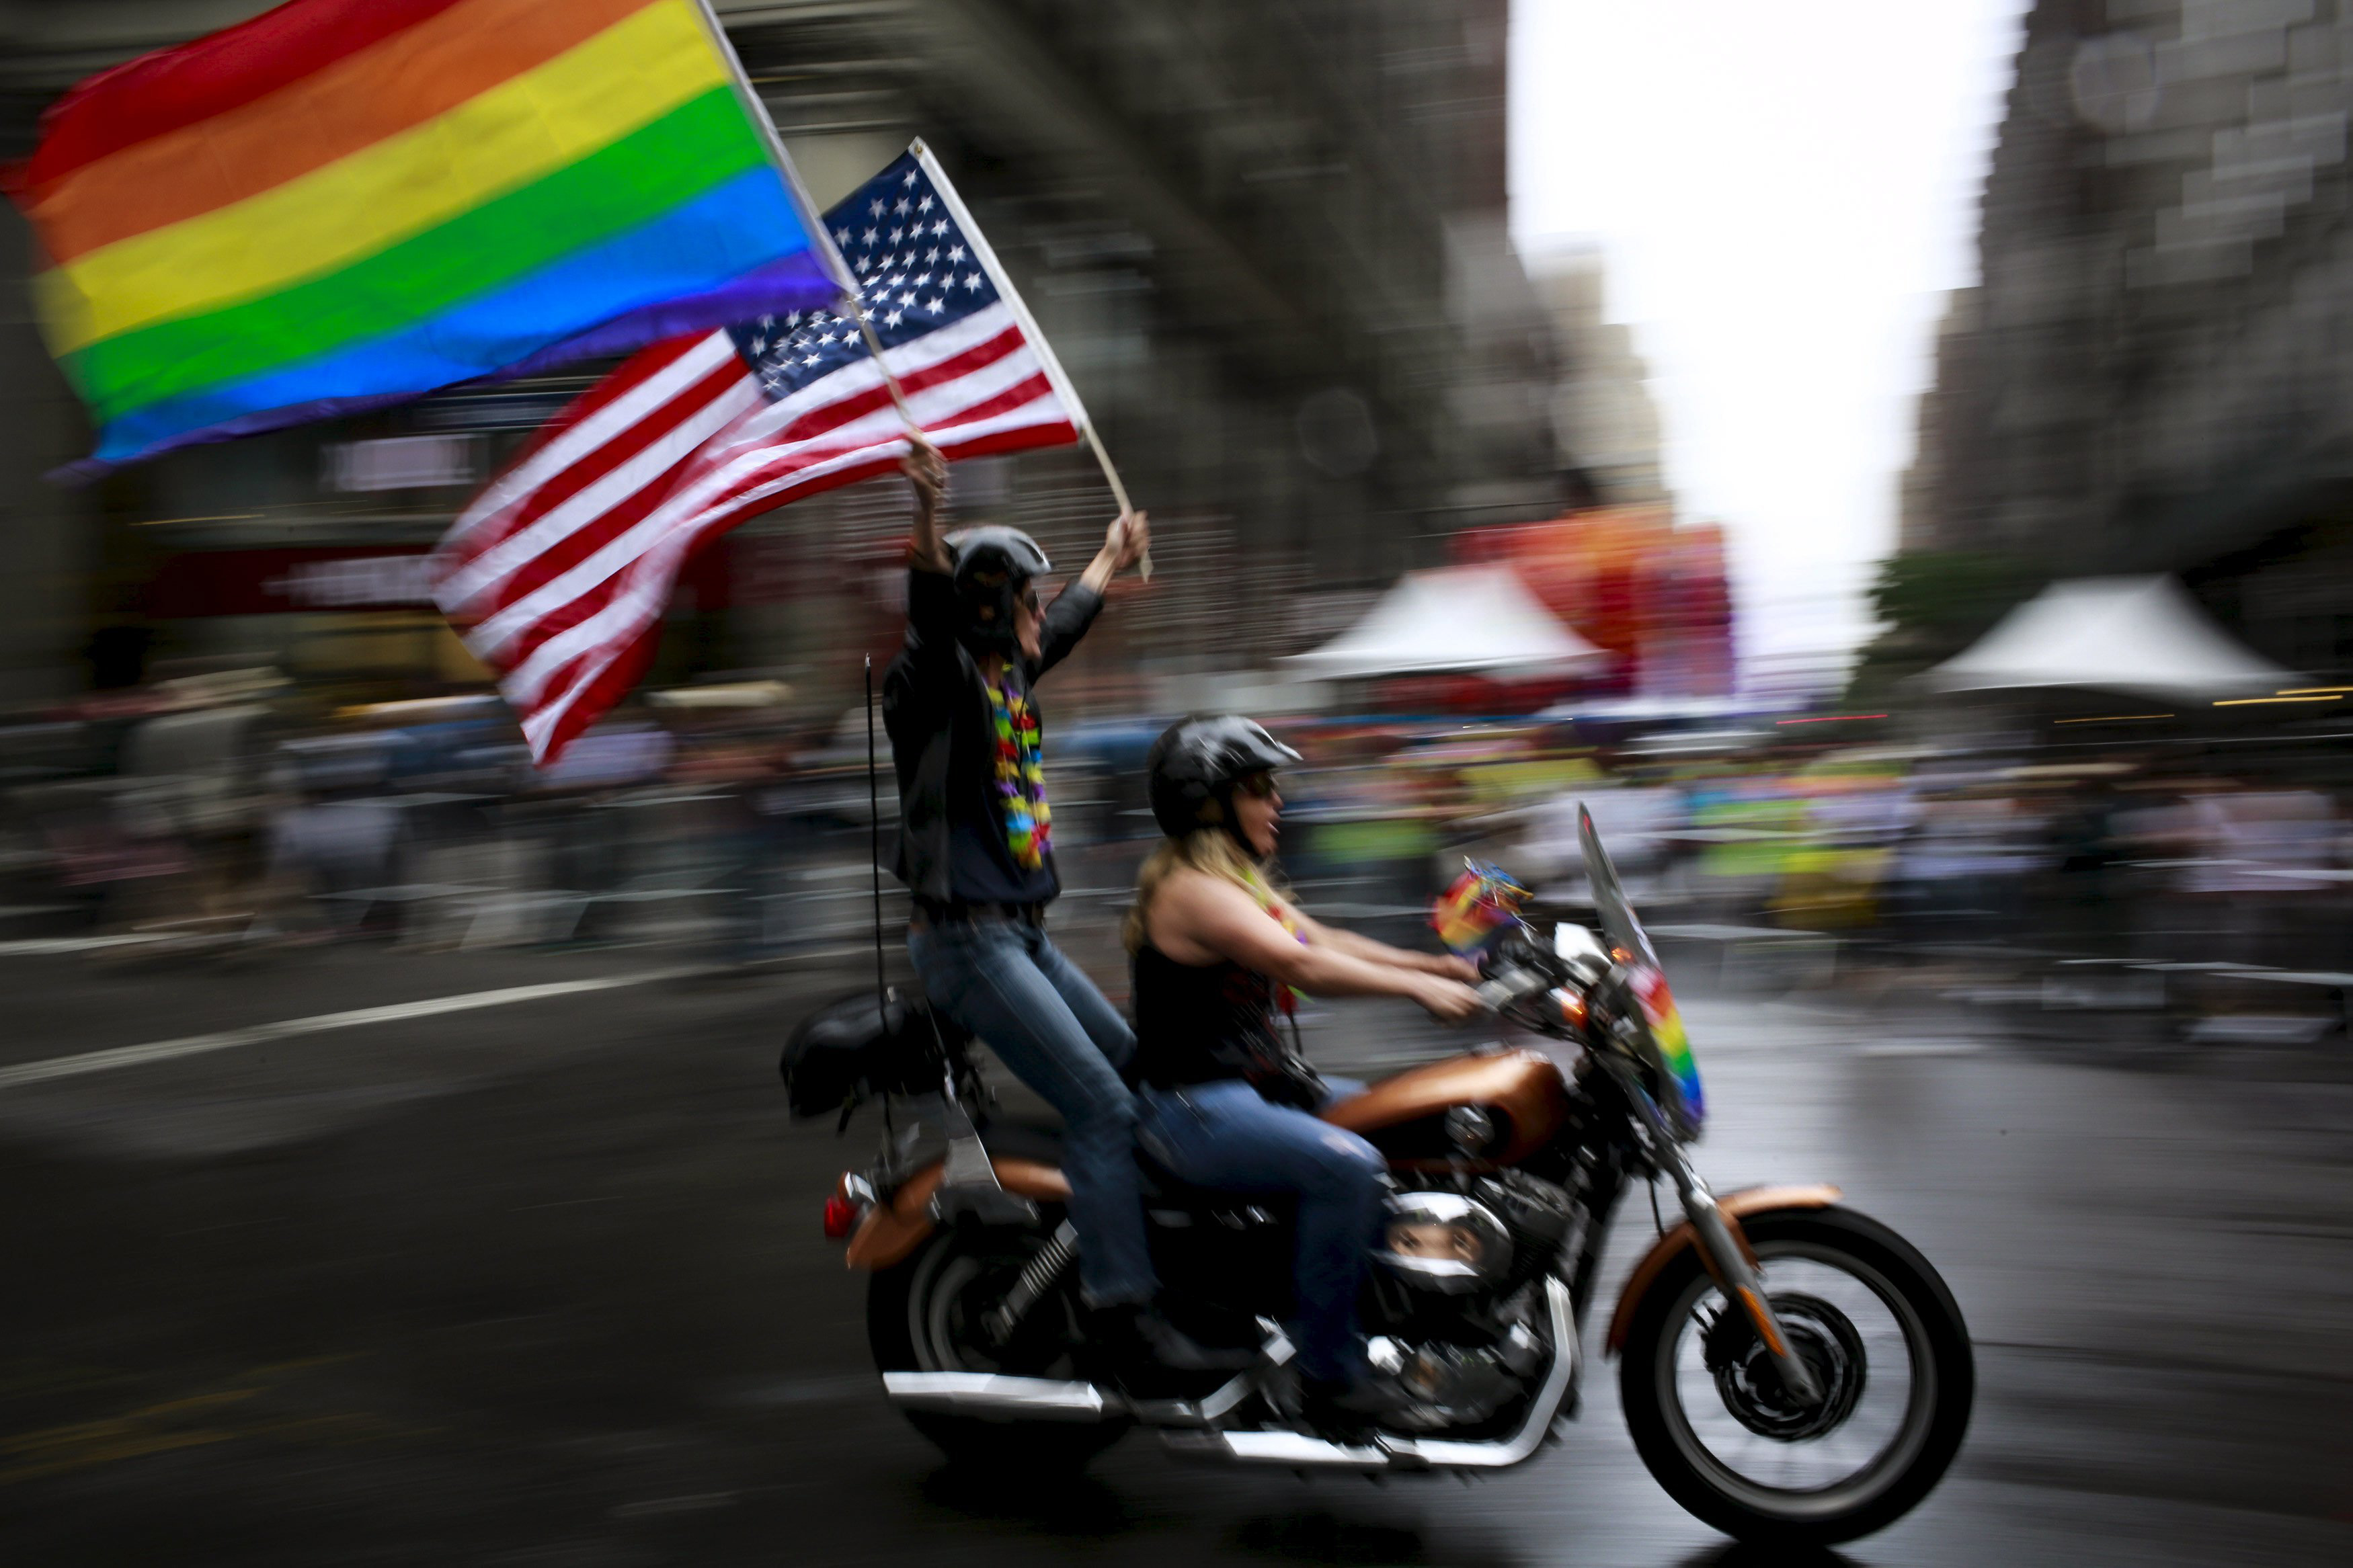 A couple carry an American flag and a rainbow flag during the annual Gay Pride parade in New York on June 28, 2015.